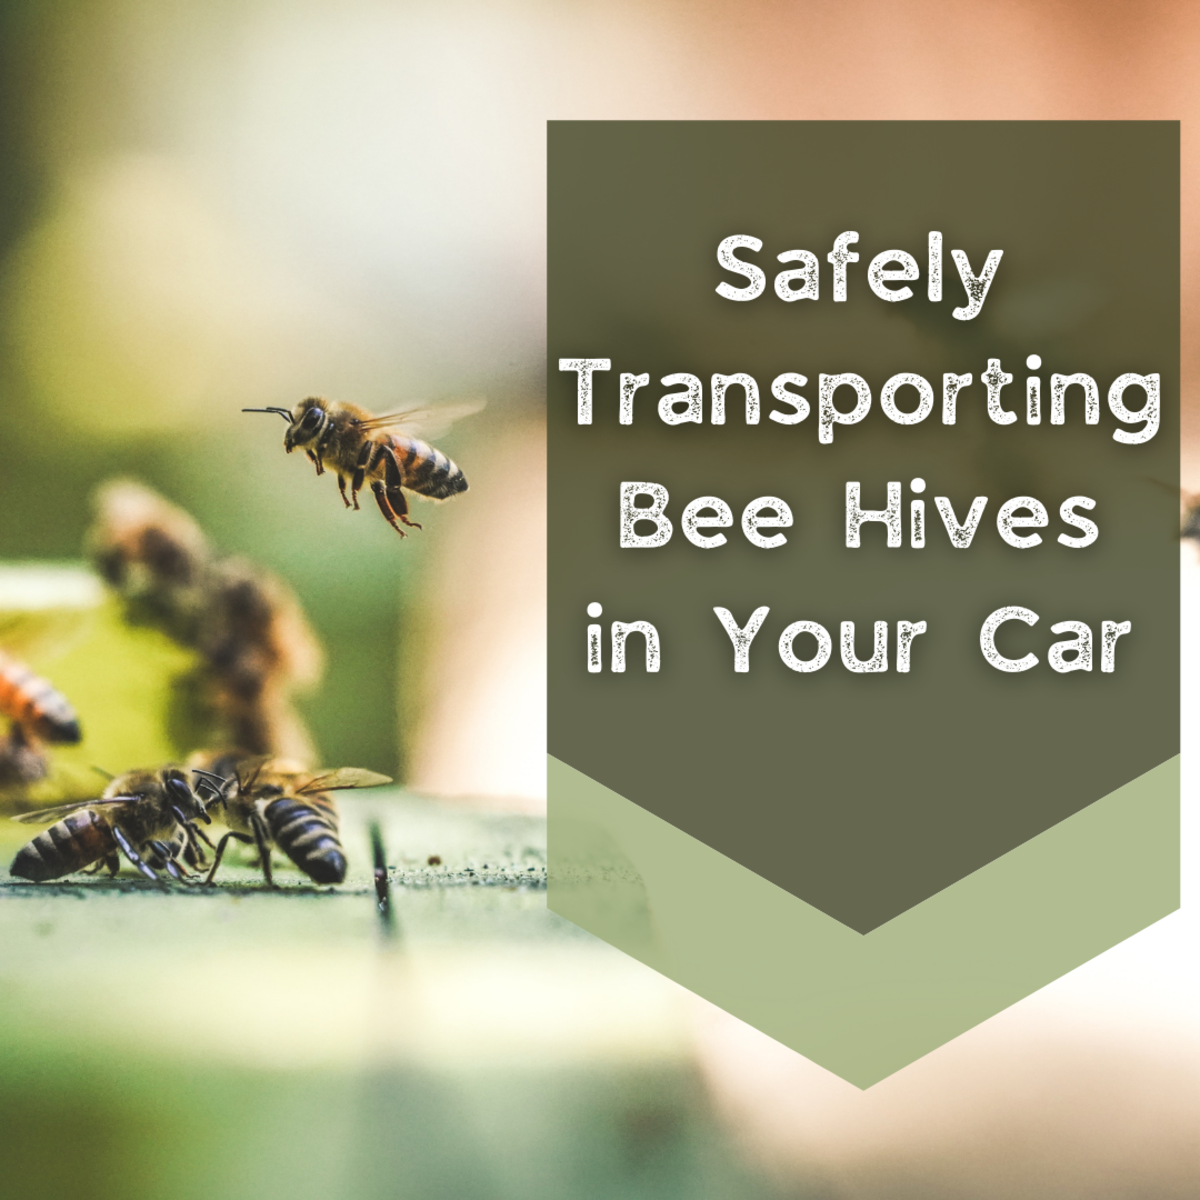 Learn how to safely and easily transport bees in your car